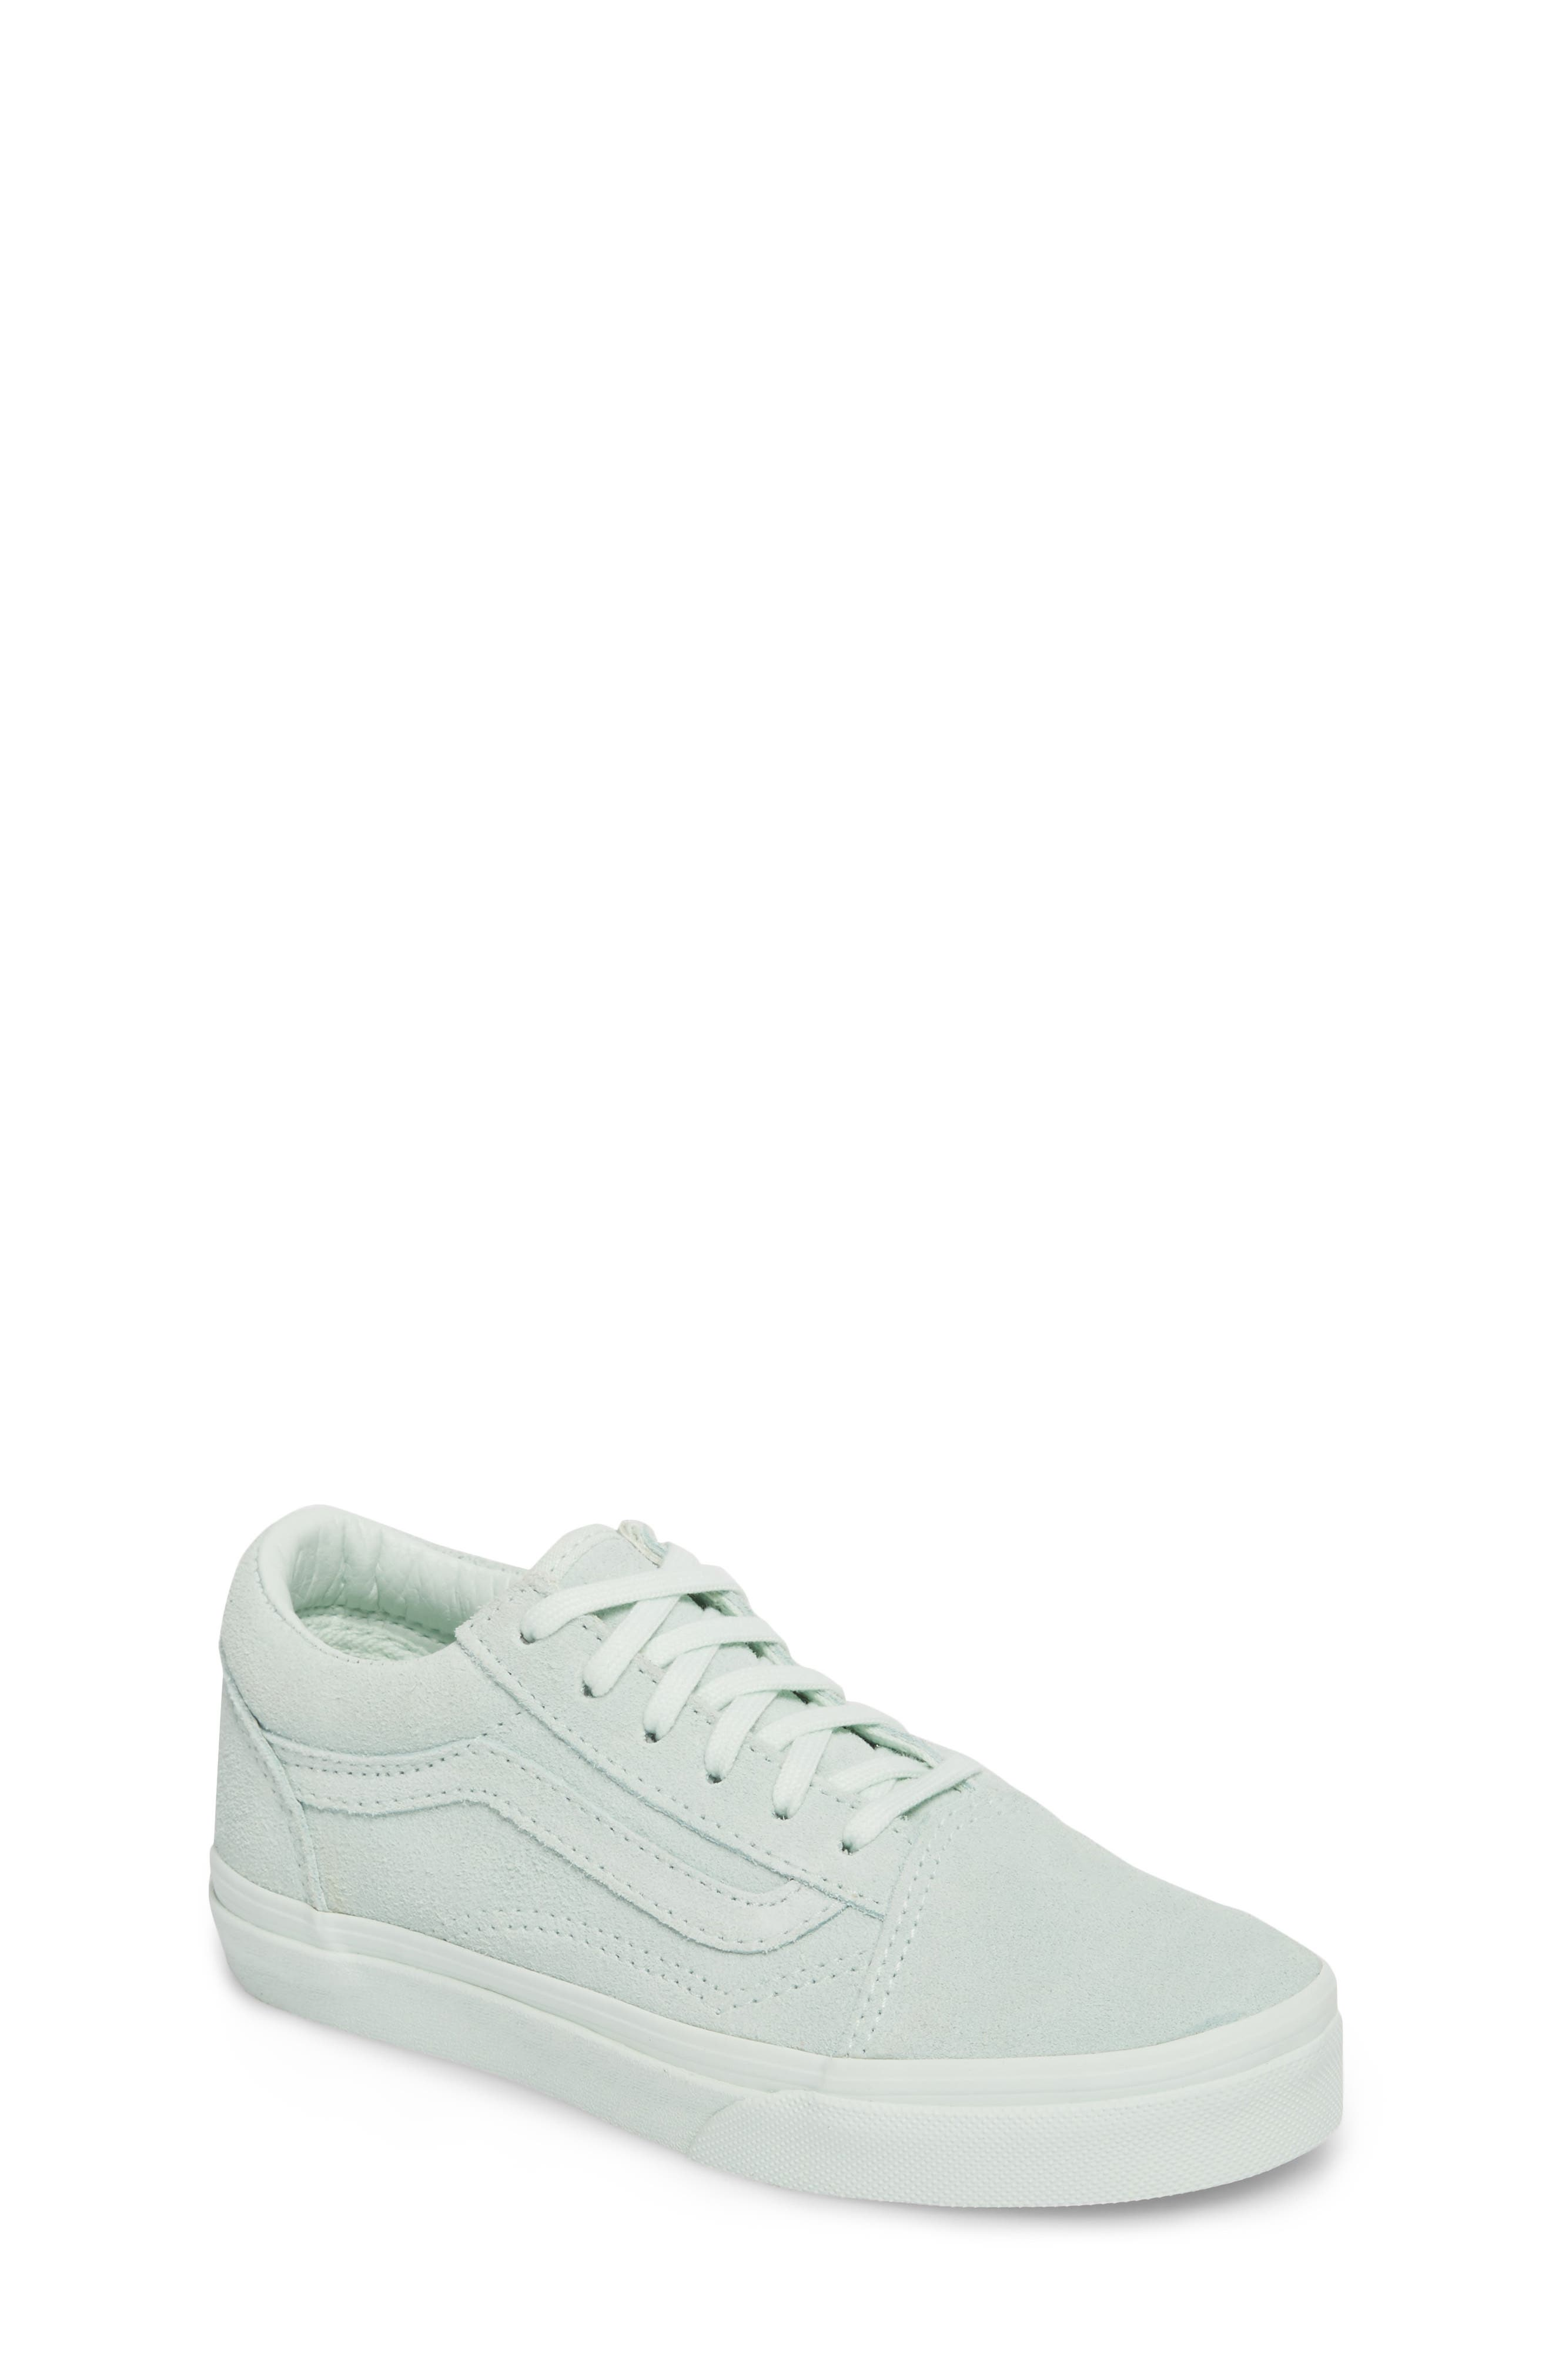 Old Skool Low Top Sneaker,                         Main,                         color, Suede Mono/ Aqua Glass